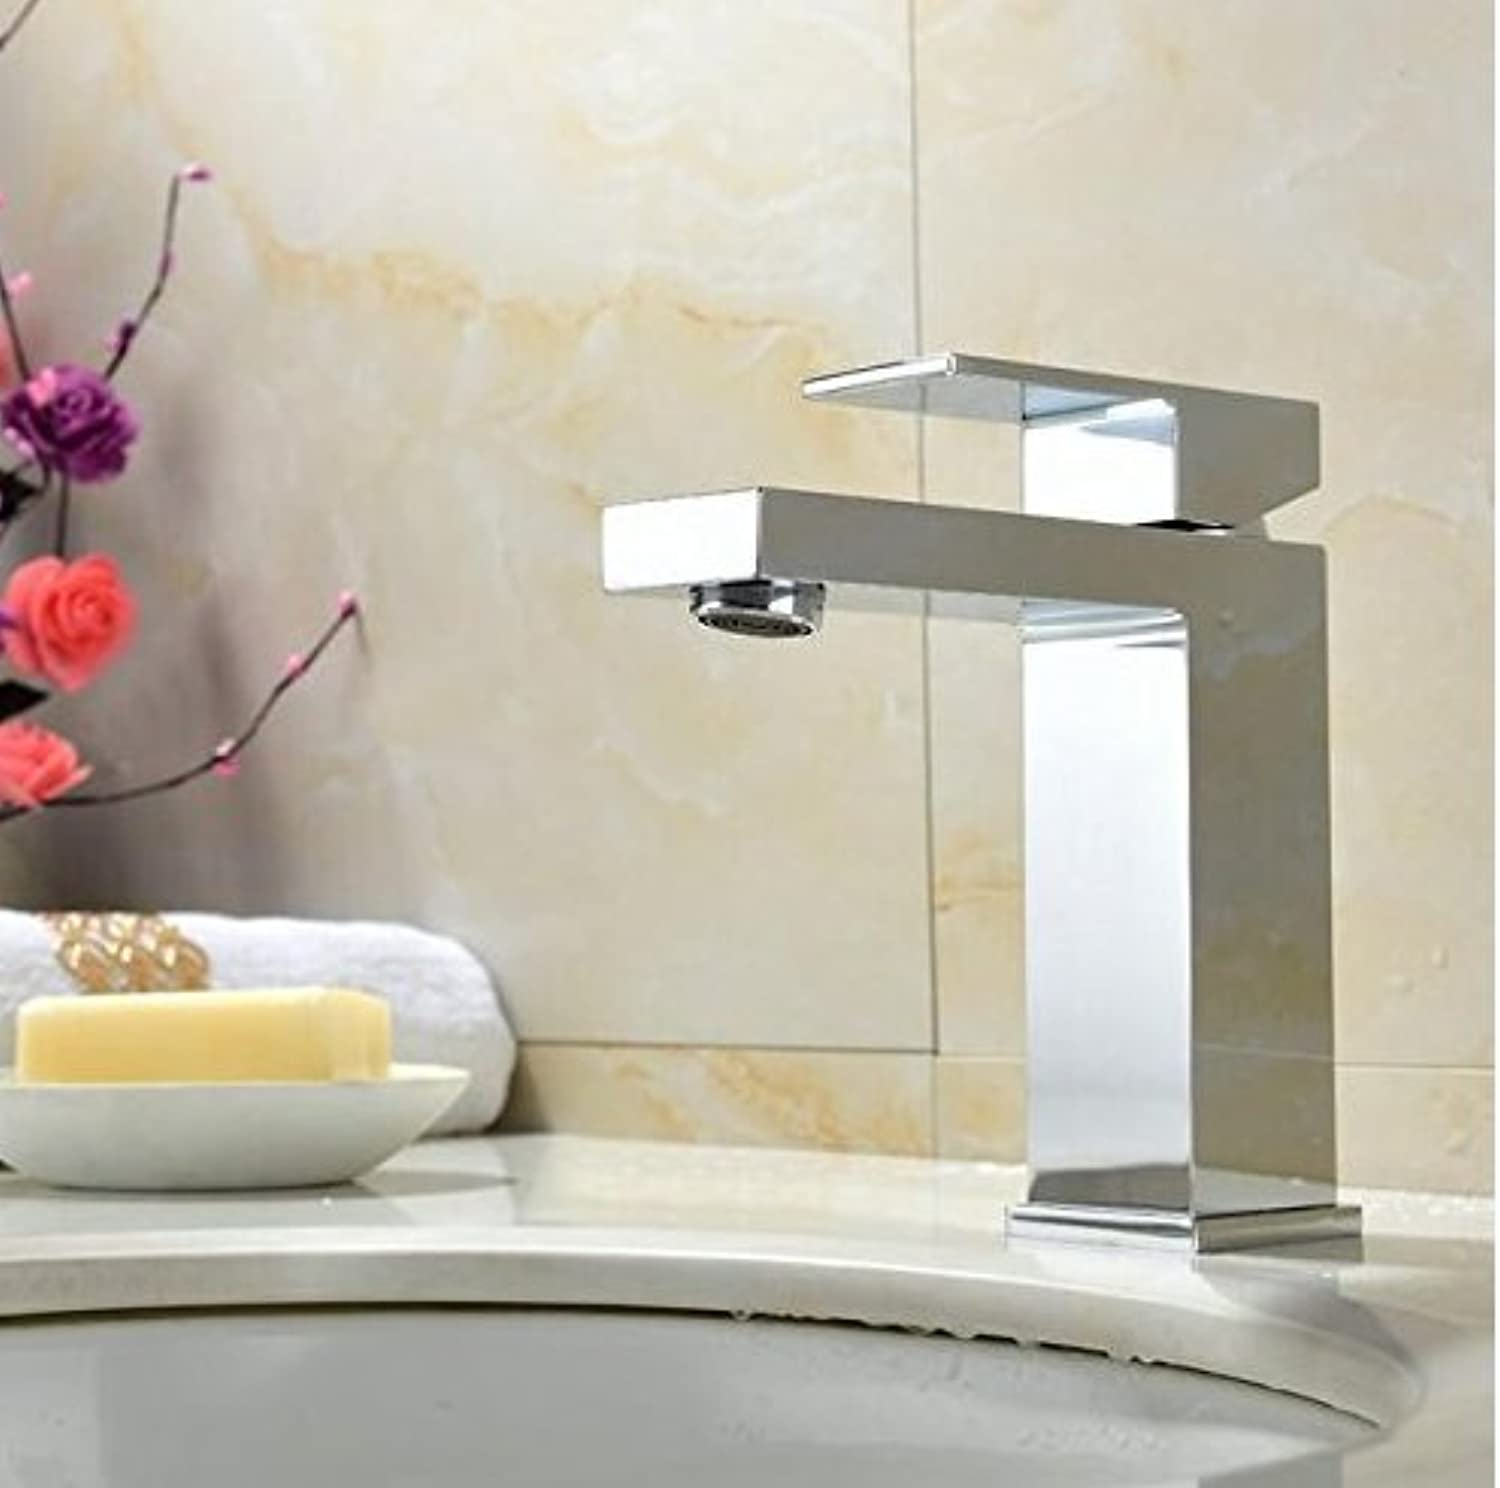 Diongrdk Basin Faucet Brass Body Square Hot and Cold Water Single Hole Single Handle Basin Faucet Tap Basin Sink Mixer Tap